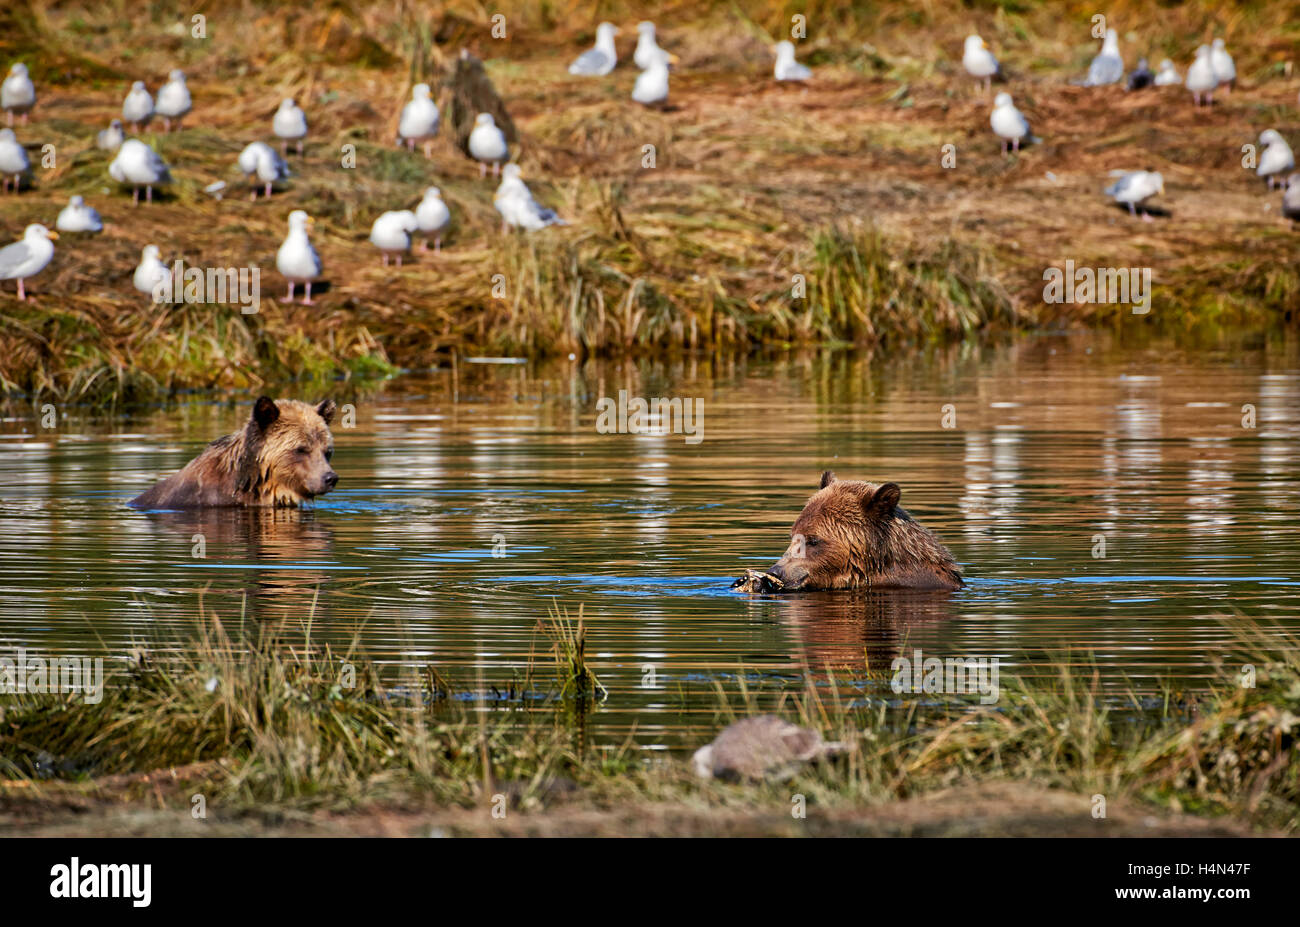 Grizzly bears hunting salmon, Ursus arctos horribilis, Great Bear Rainforest, Knight Inlet, British Columbia, Canada - Stock Image